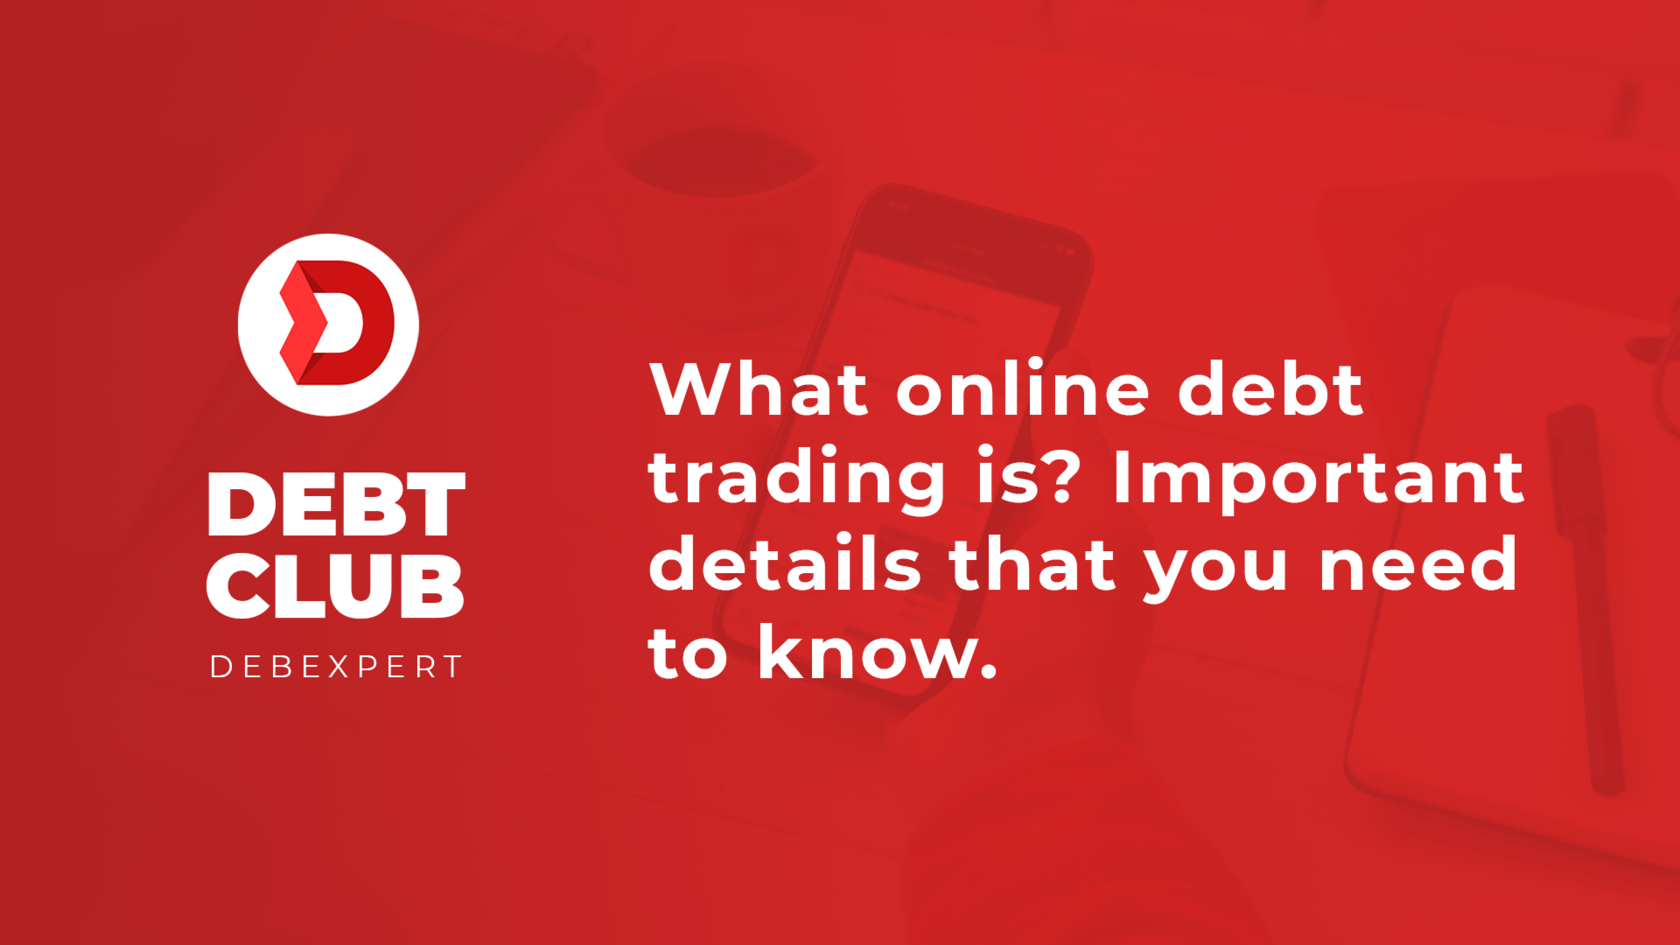 What online debt trading is?